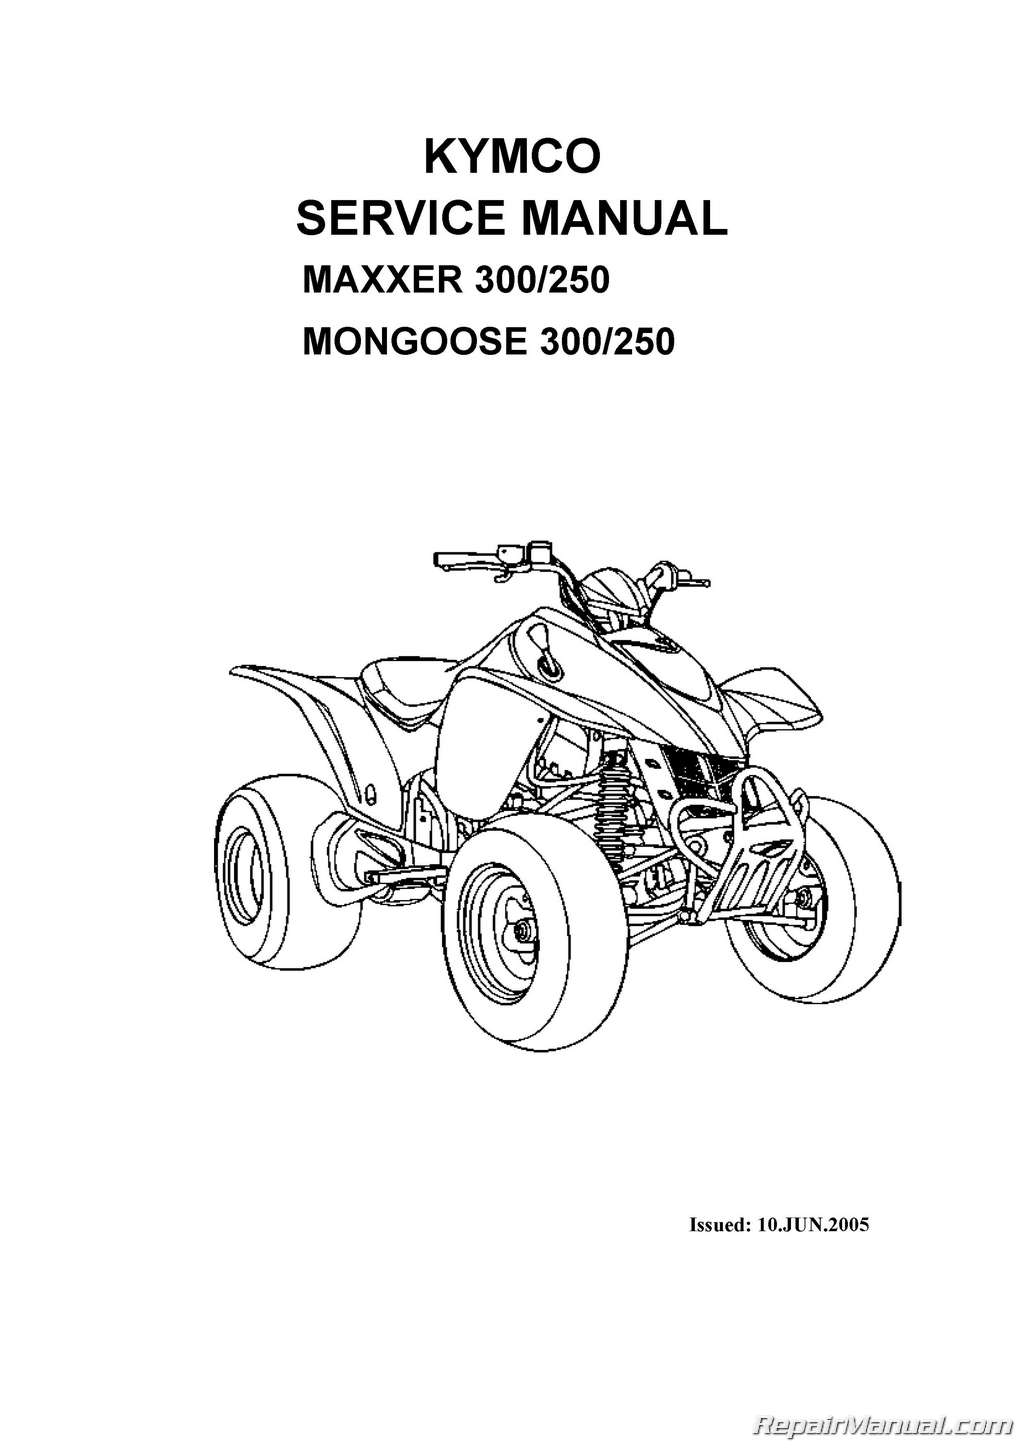 Kymco Mongoose 250 300 Maxxer Atv Printed Service Manual